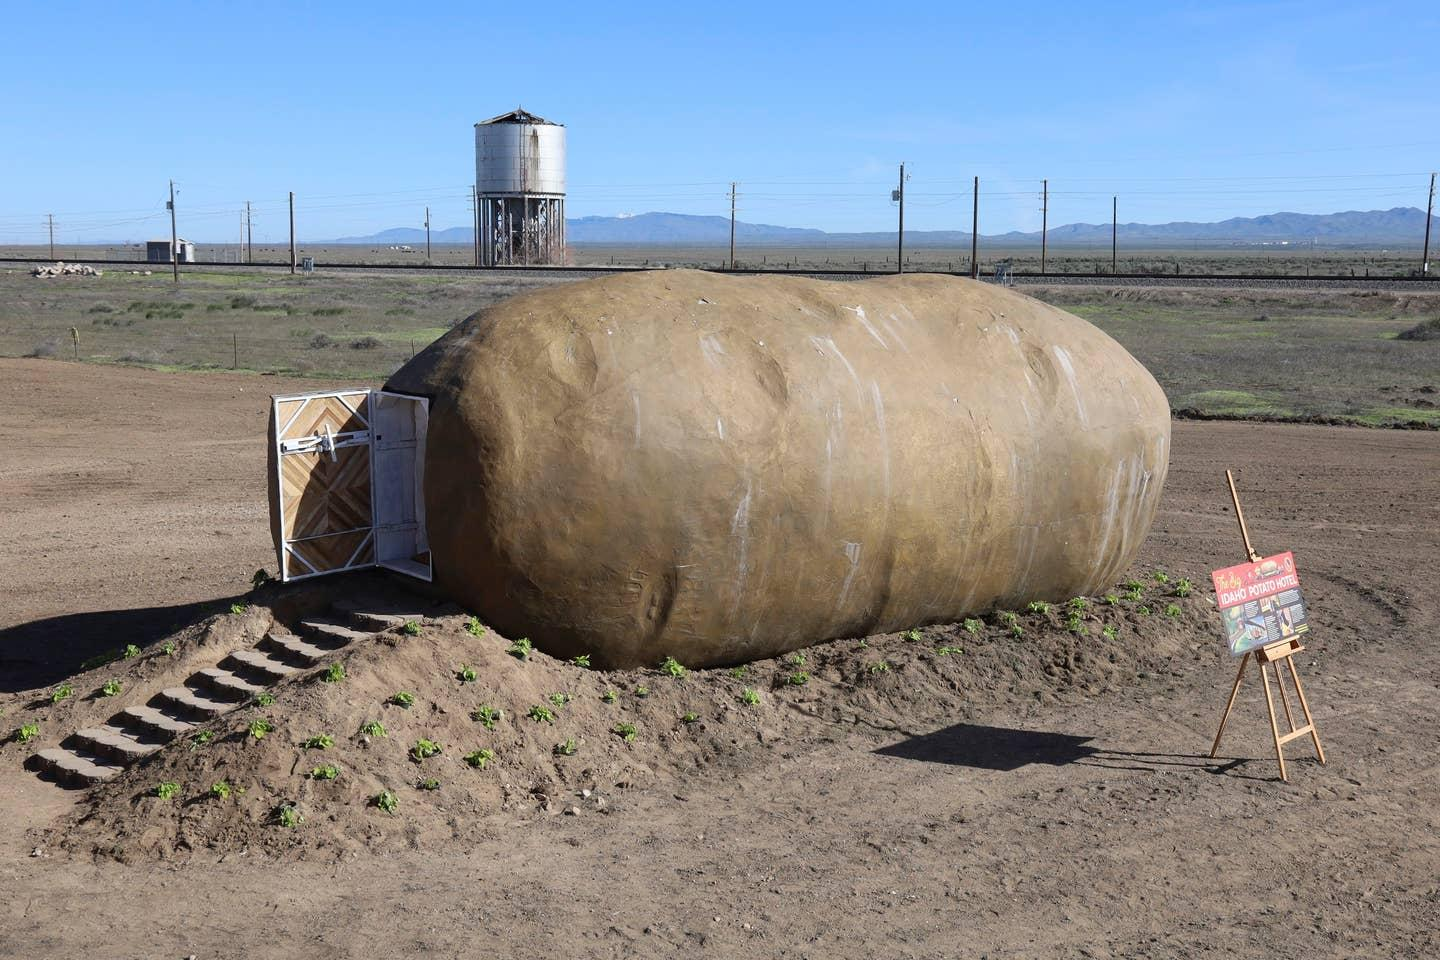 The Big Idaho Potato Hotel is located on a large 400 acre (161 hectare) farm in Idaho